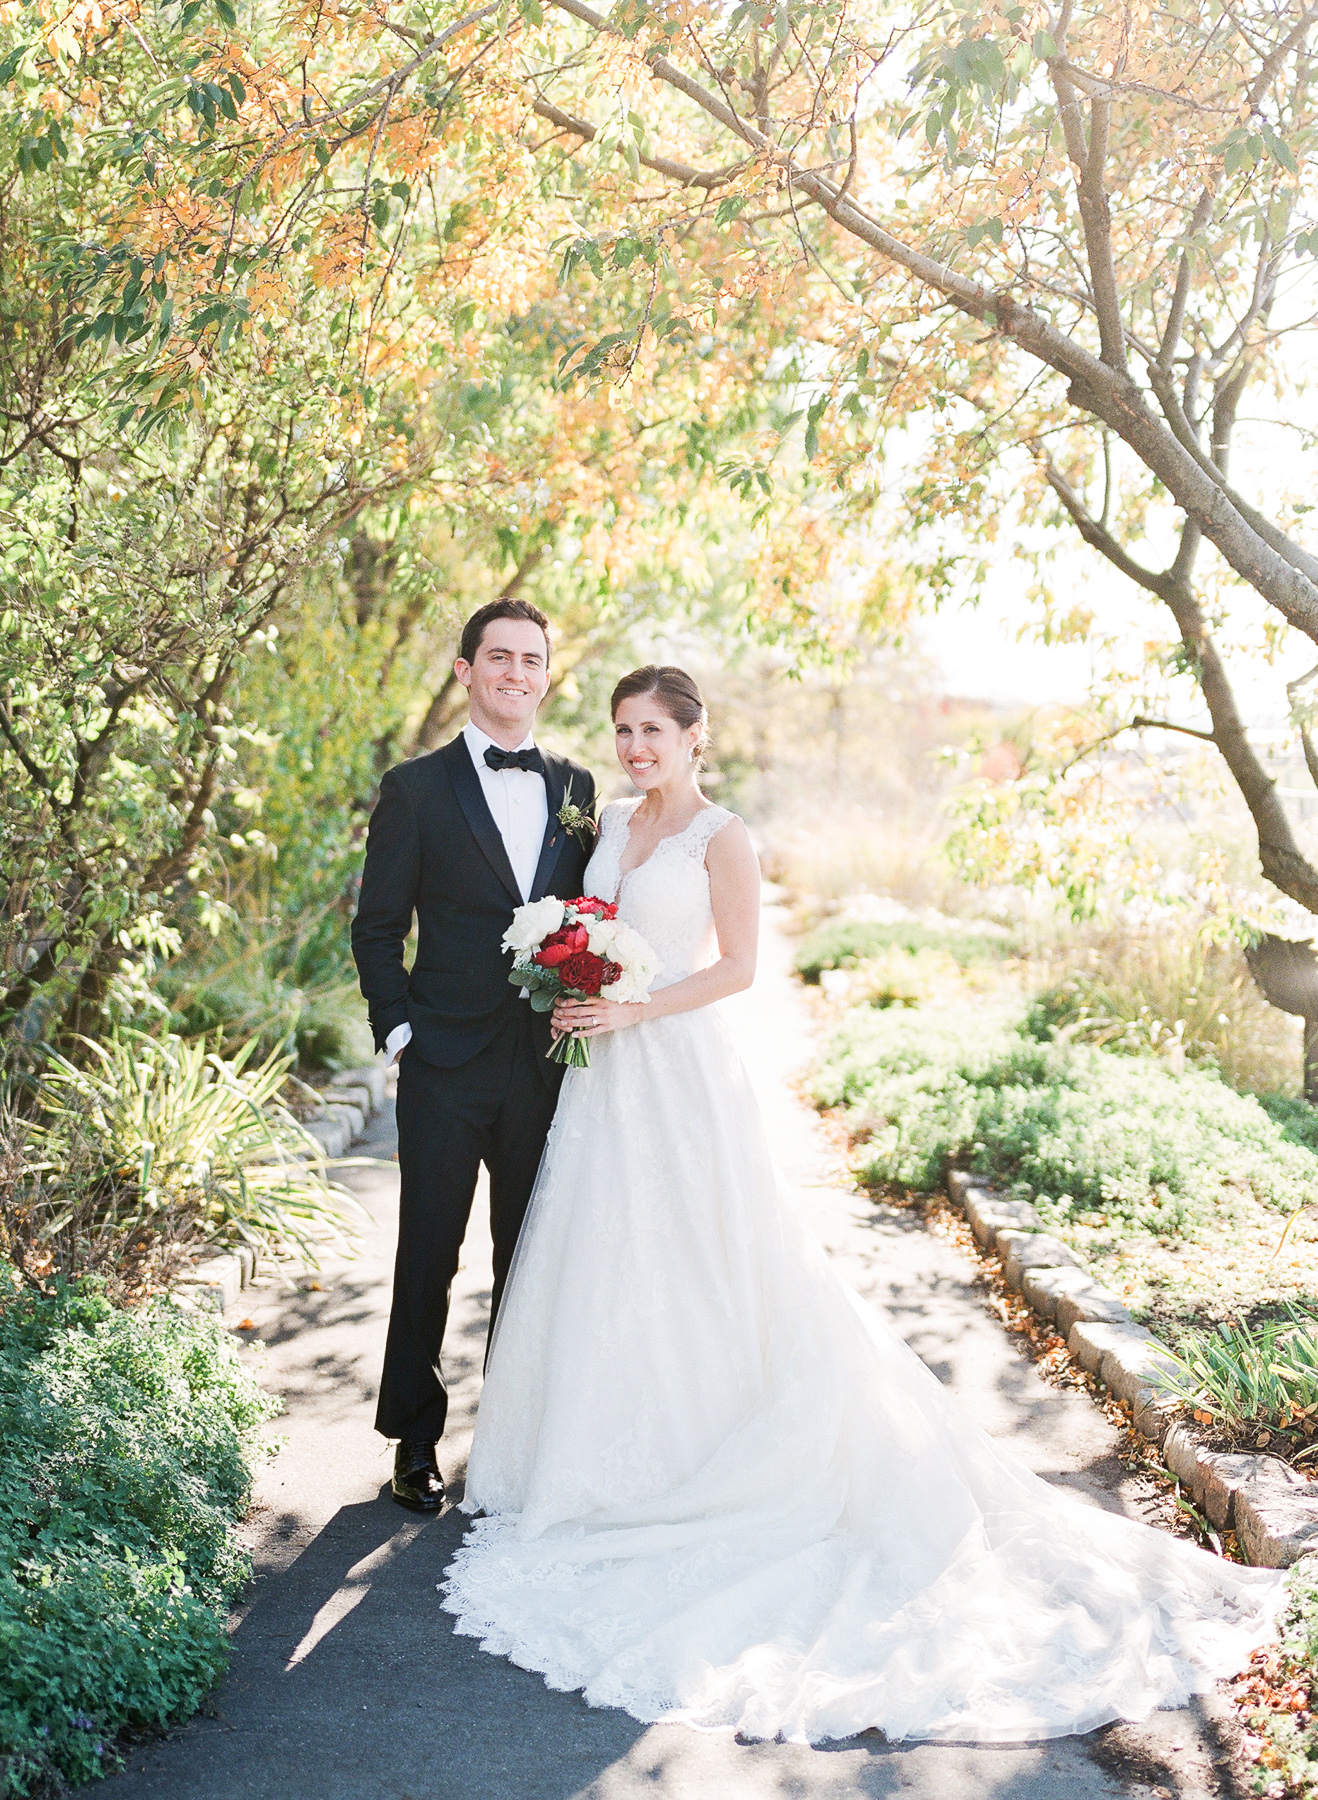 Bride and Groom in Liberty warehouse wedding in Brooklyn, NY documented by NY wedding film photographer, Michelle Lange Brooklyn New York